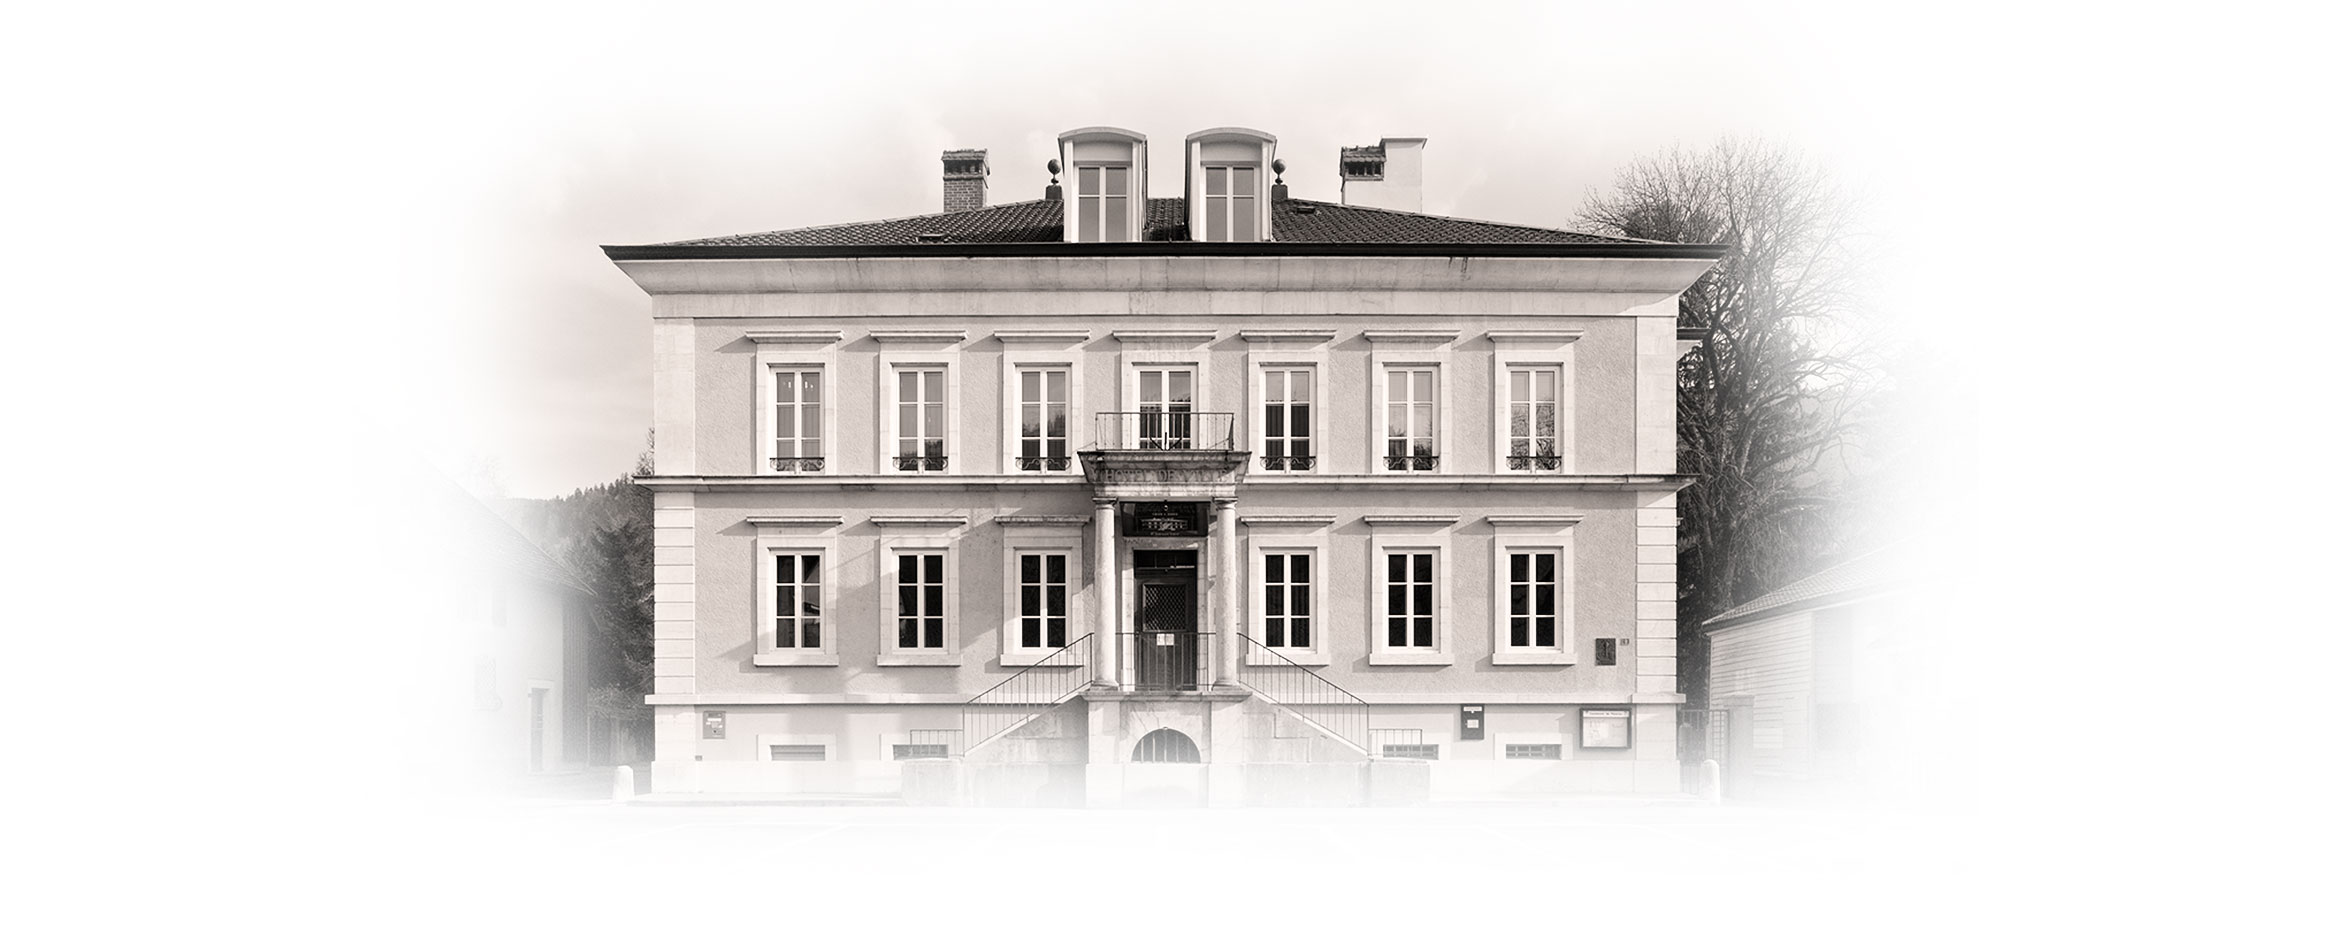 Black and white photo of the Fleurier Quality Foundation Building on two floors in Fleurier